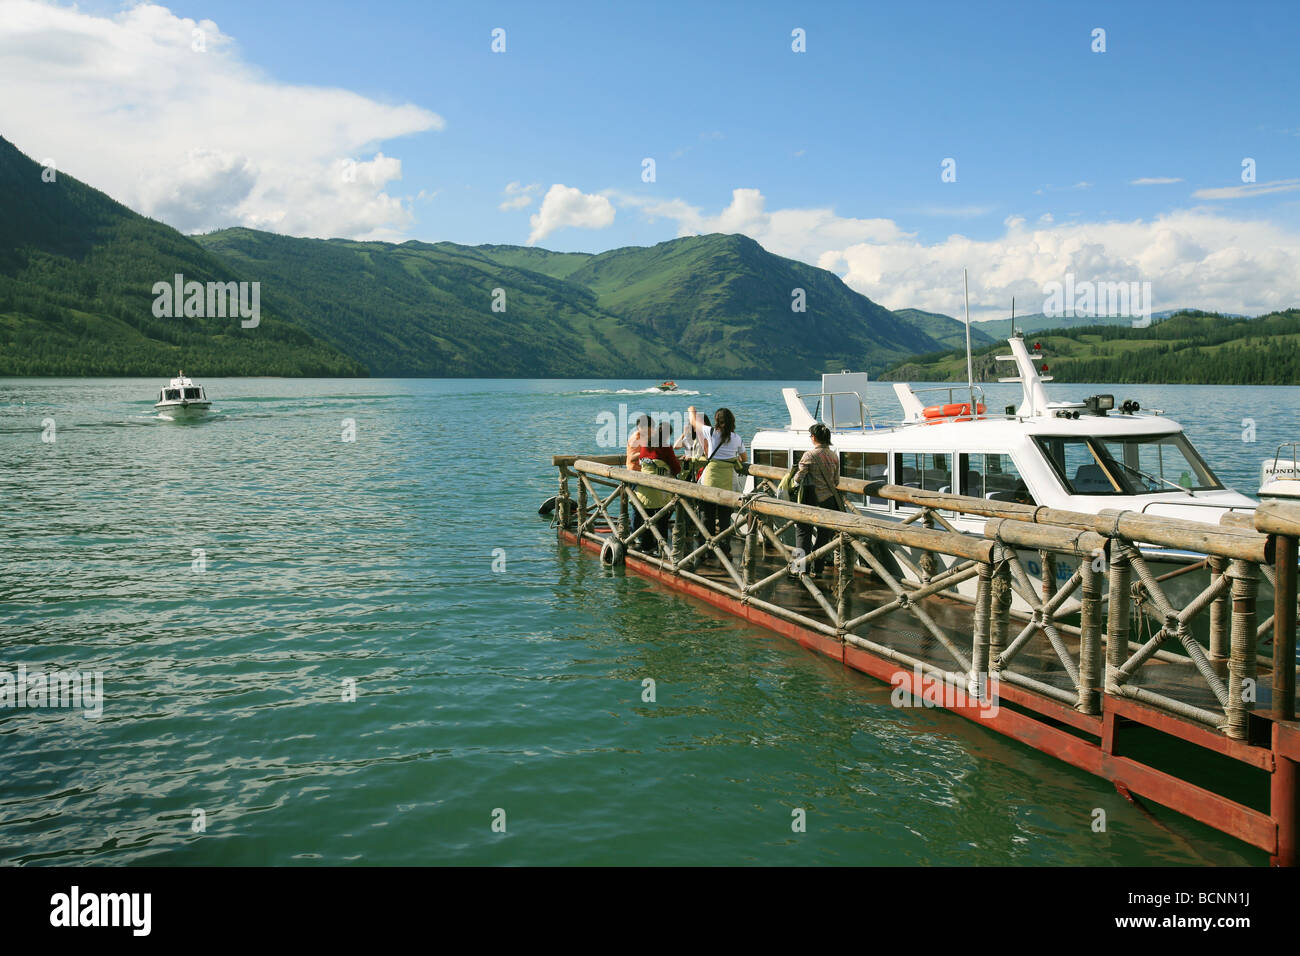 Tourists waiting to board tour boat on the pier, Kanas Lake, Xinjiang Uyghur Autonomous Region, China - Stock Image